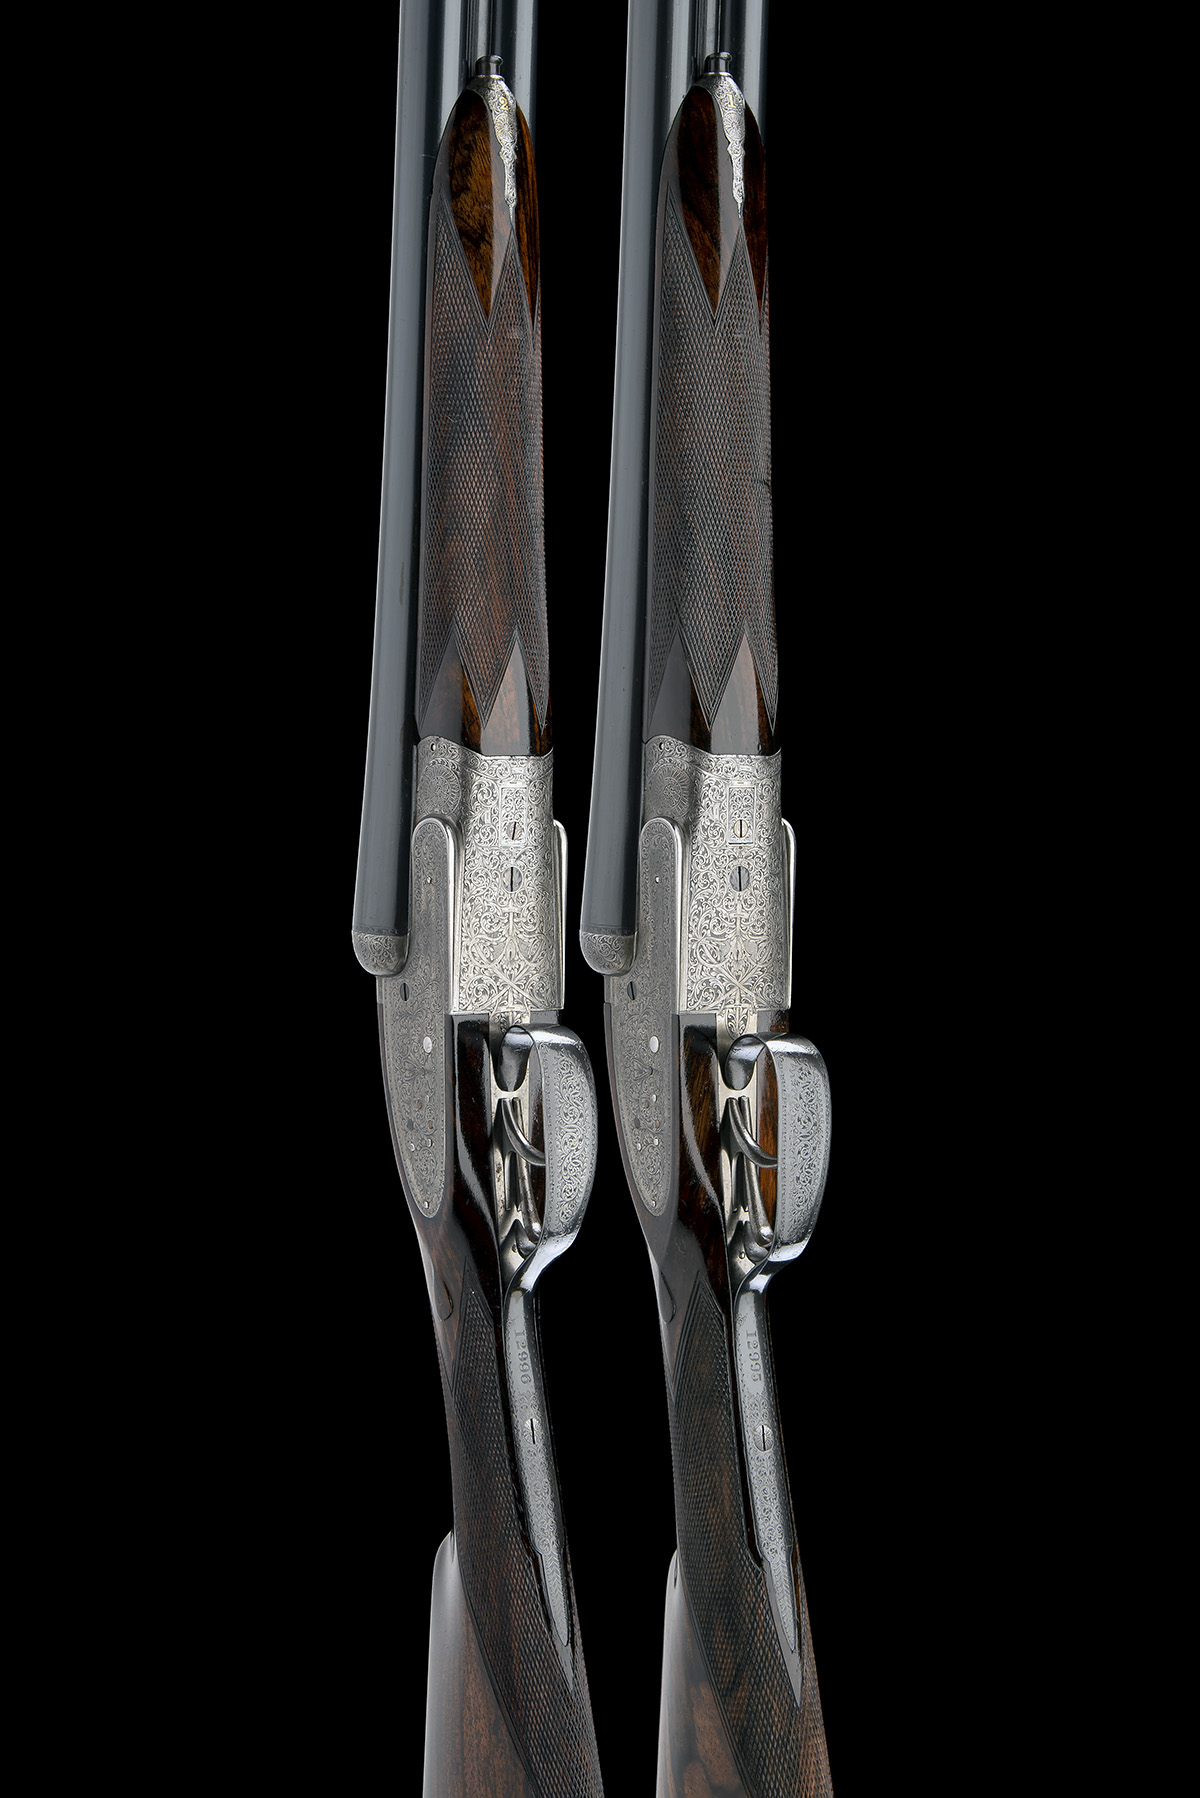 WILLIAM EVANS A PAIR OF 12-BORE SIDELOCK EJECTORS, serial no. 12995 / 6, for 1923, 30in. nitro - Image 3 of 12